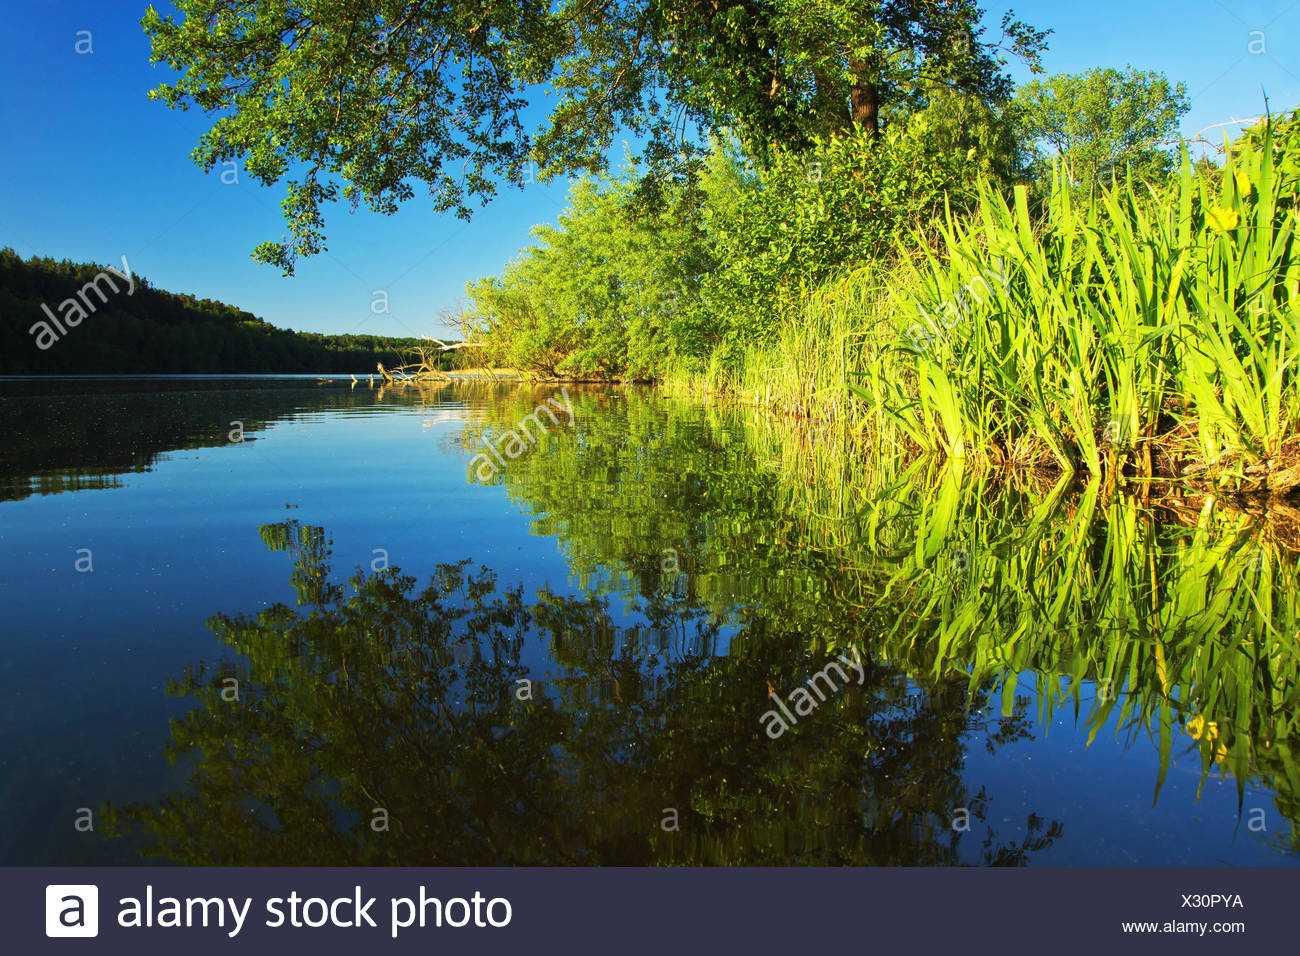 Salem See, Germany, Schleswig-Holstein, - Stock Image